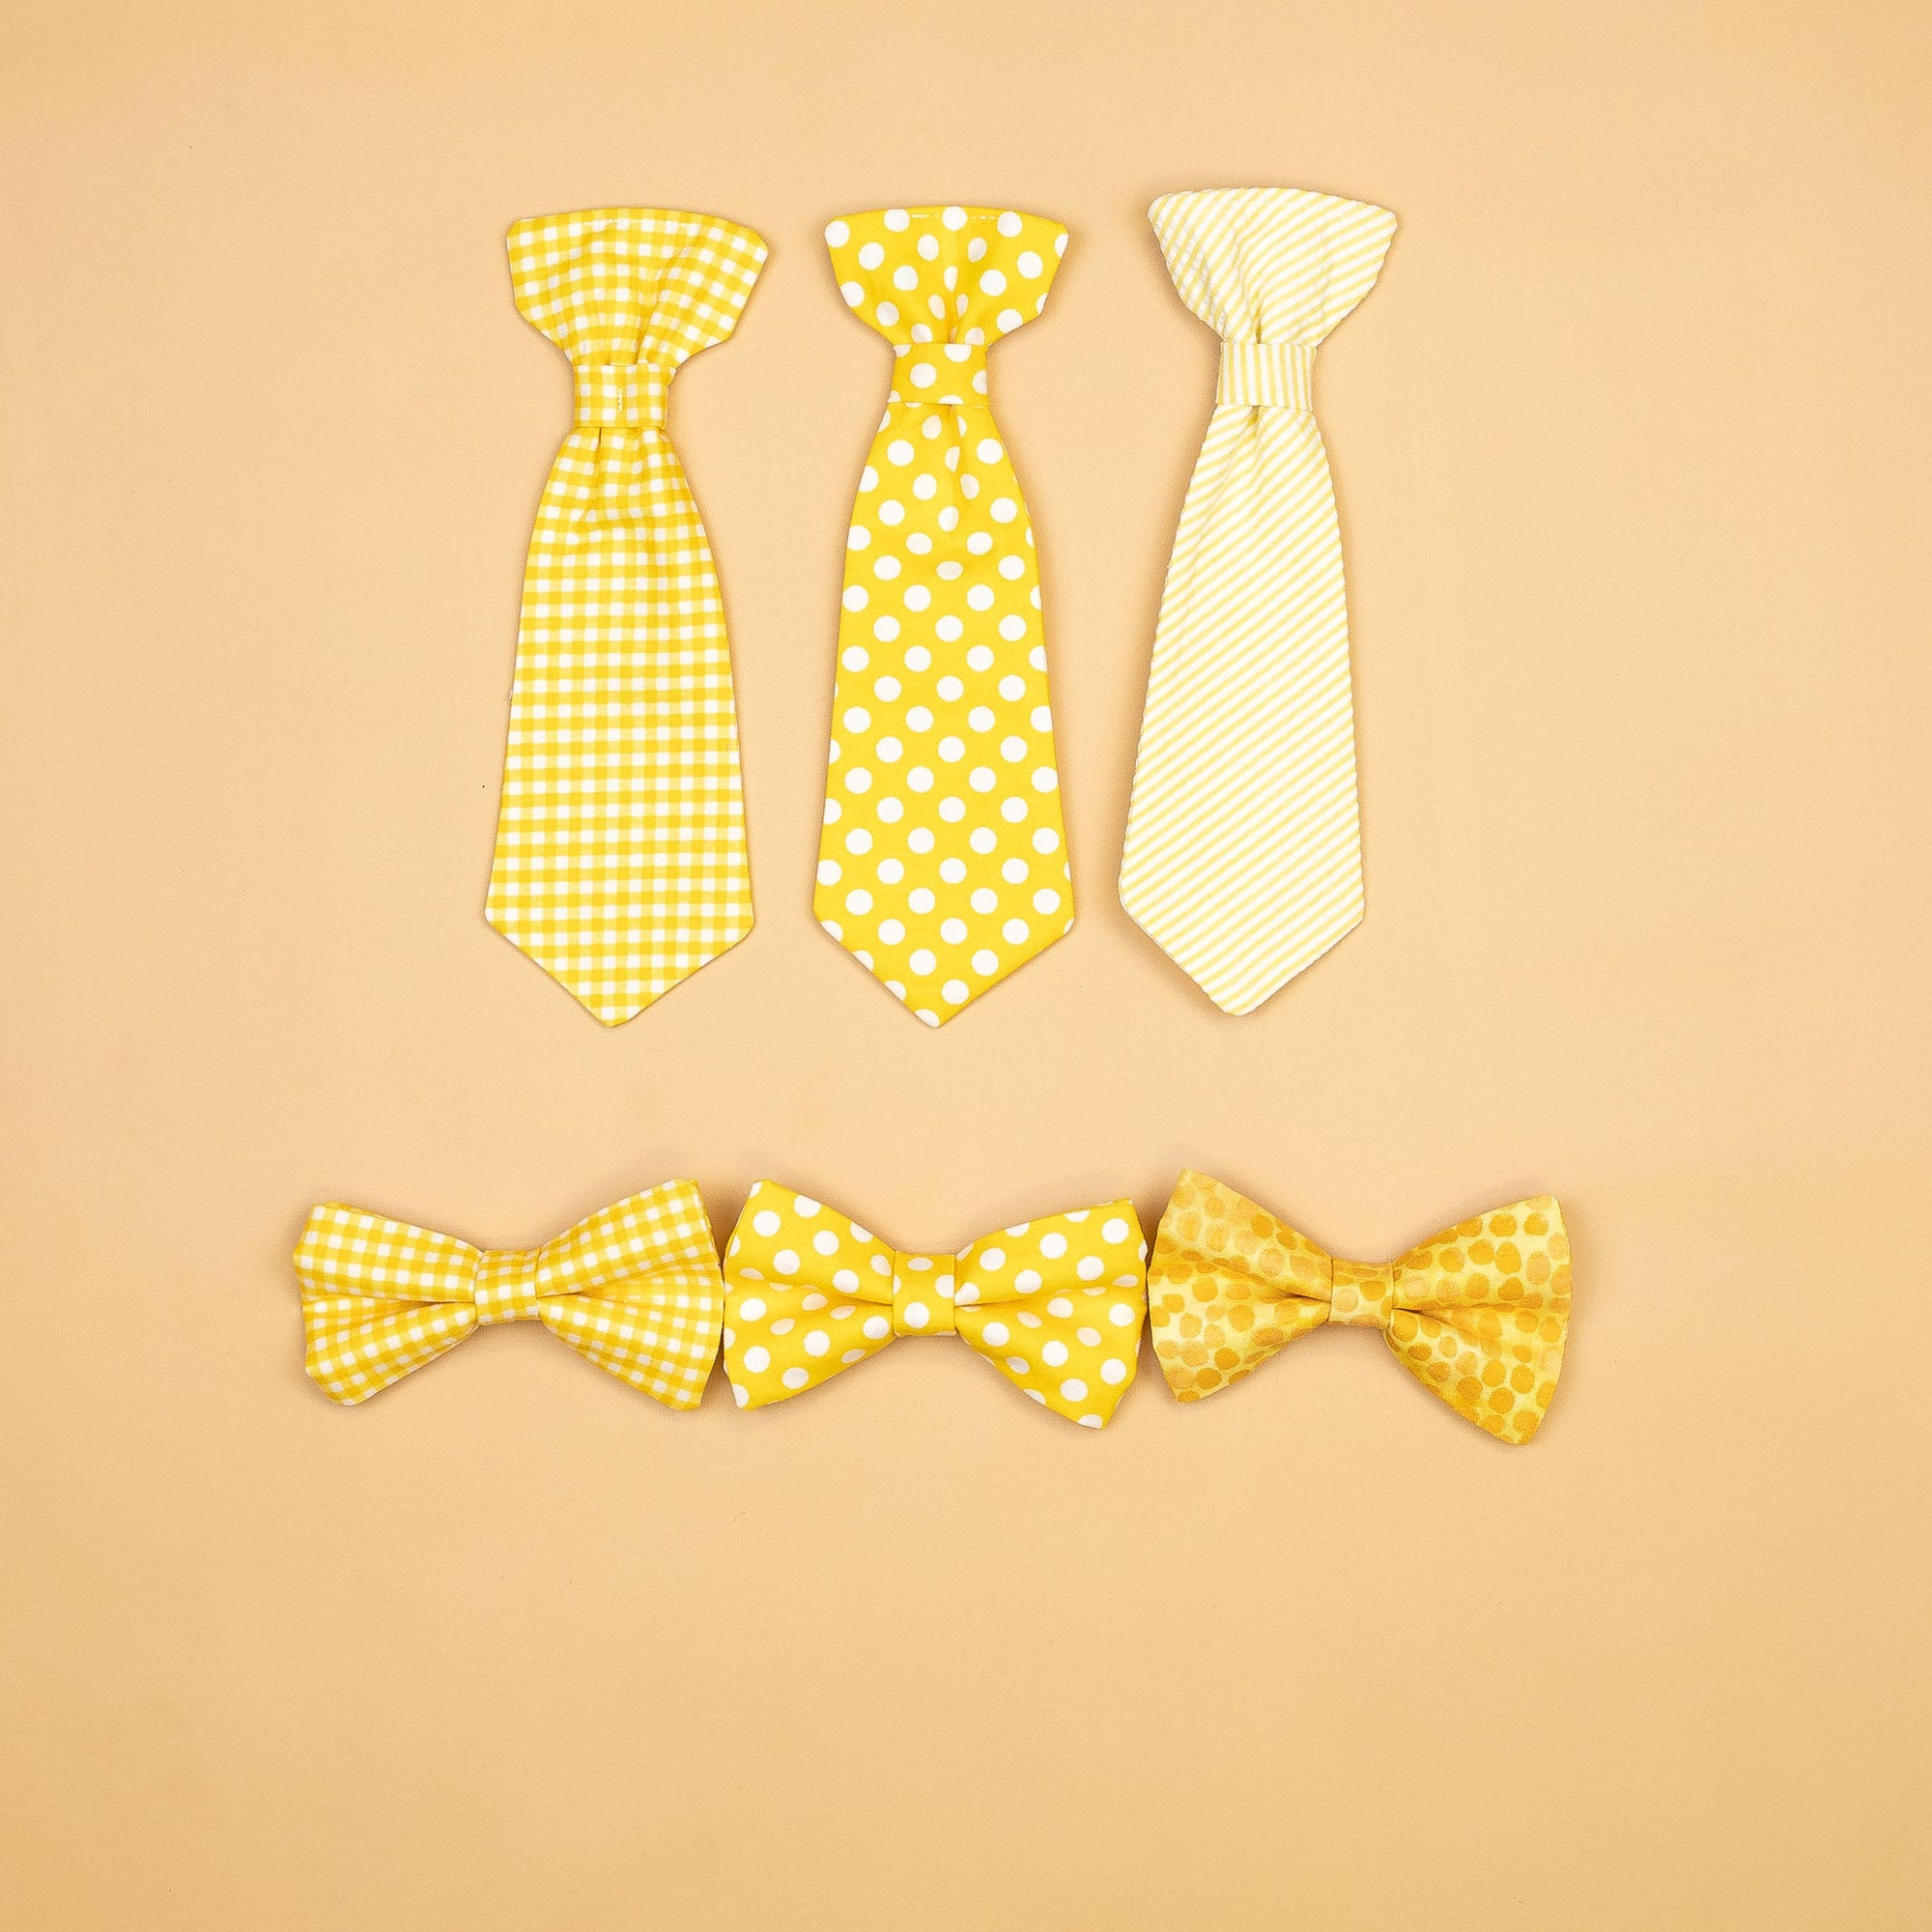 Cuddle Sleep Dream Ties Yellow Extra Ties